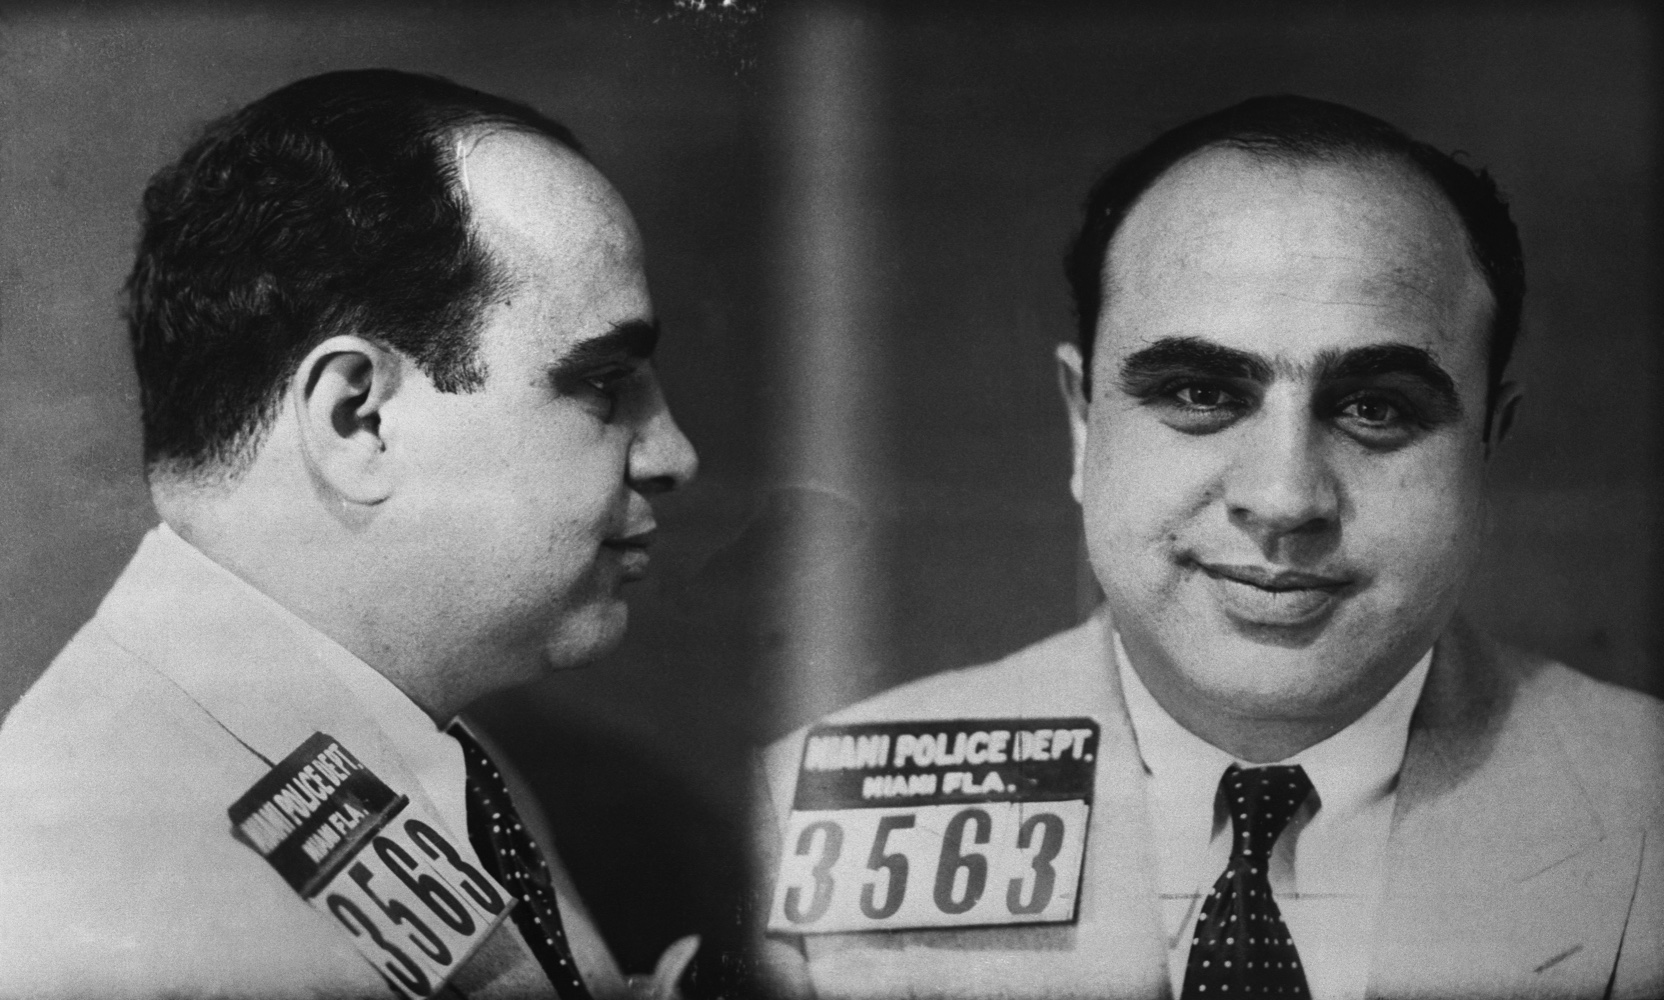 Police mug shot of Chicago mobster Al Capone, one of the leading gangsters of the prohibition era.